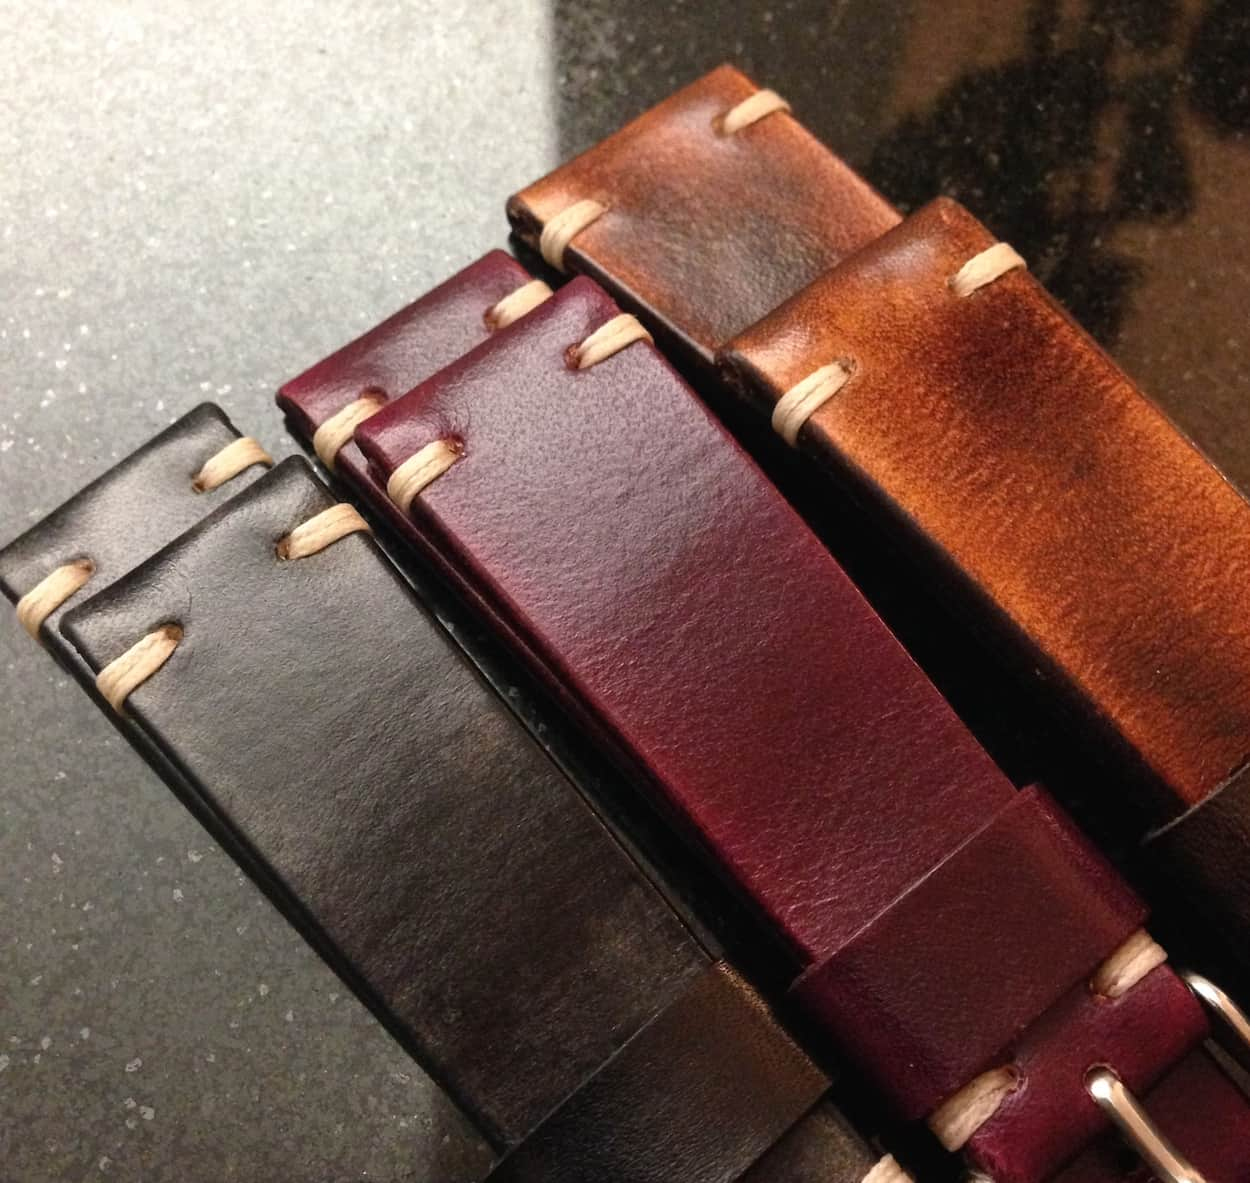 BCatt watch straps as received